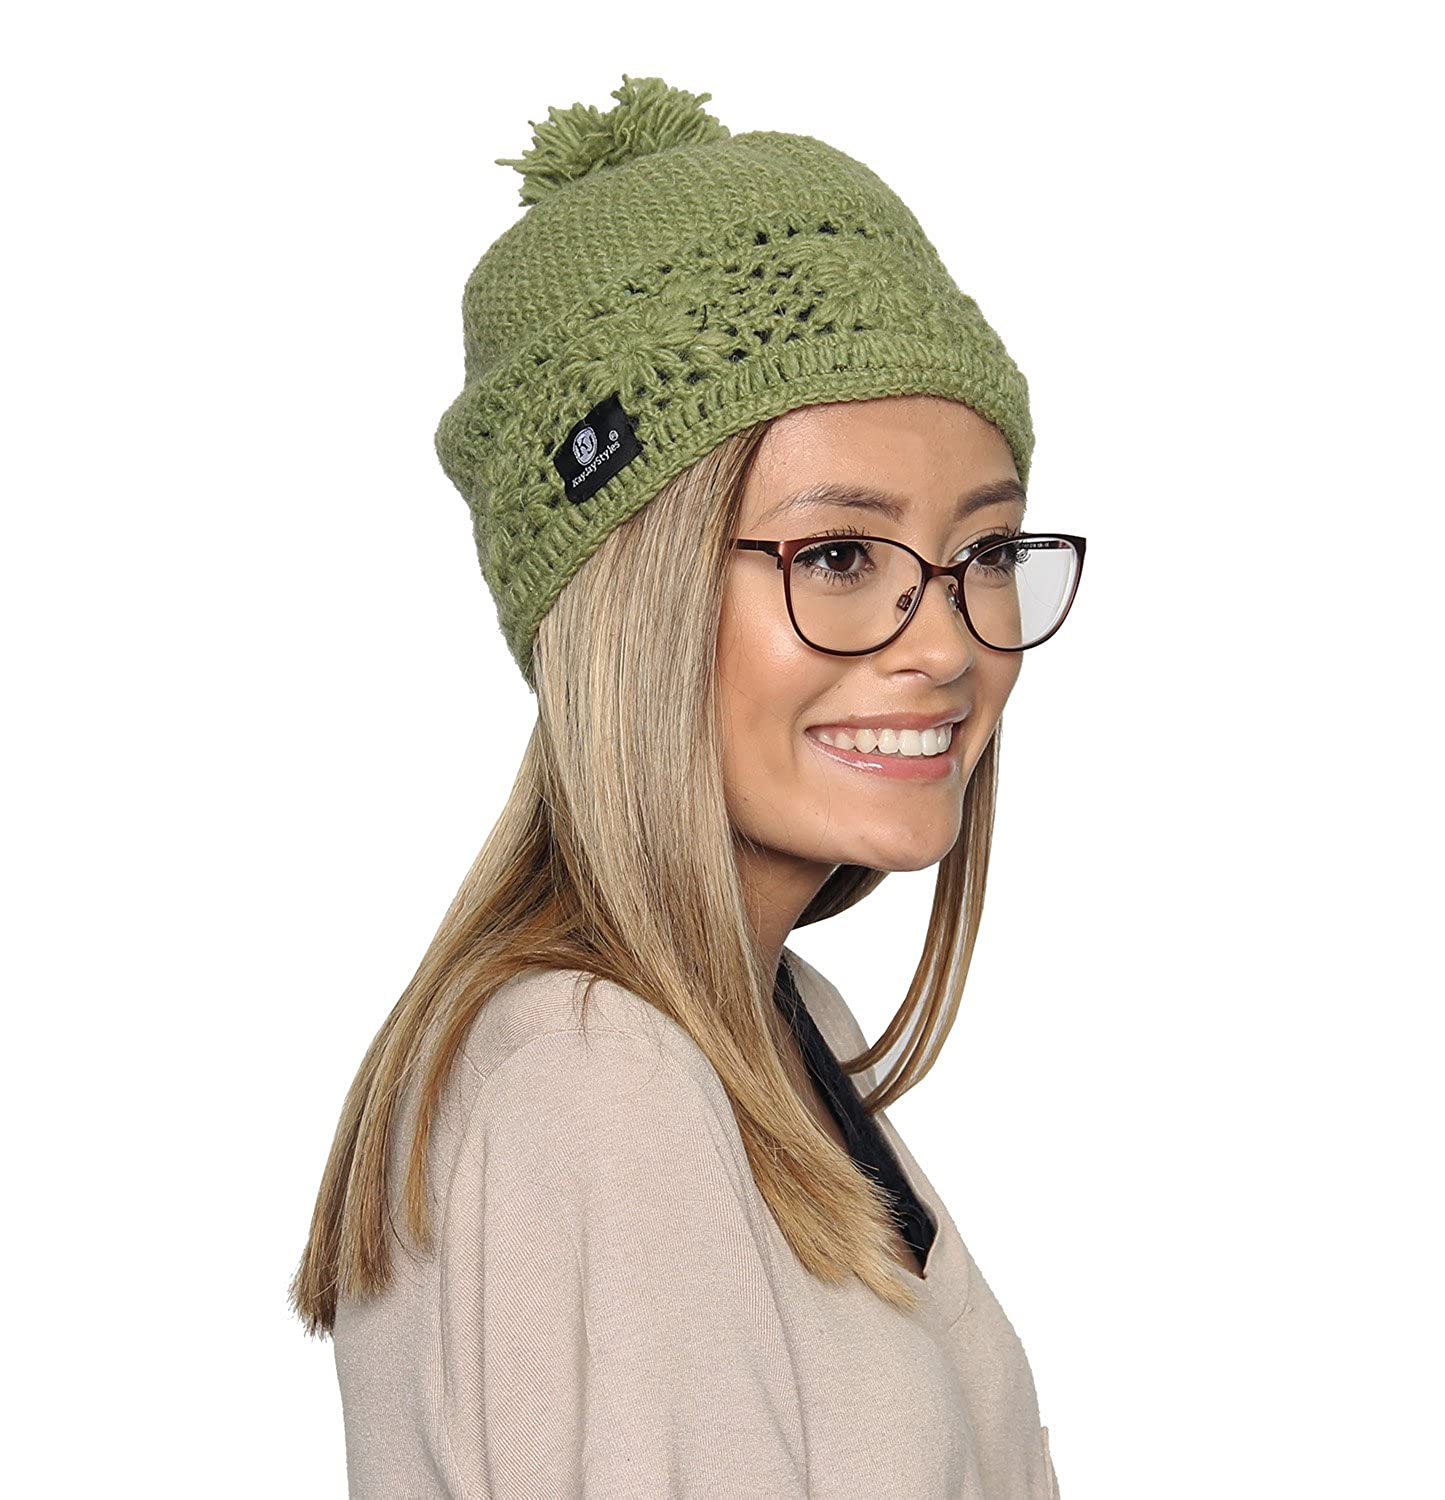 34b03efd47c Amazon.com  KayJayStyles Winter Woolen Nepal Hand Cabel Knit Pom Pom Beanie  Hat Cap (Green)  Clothing